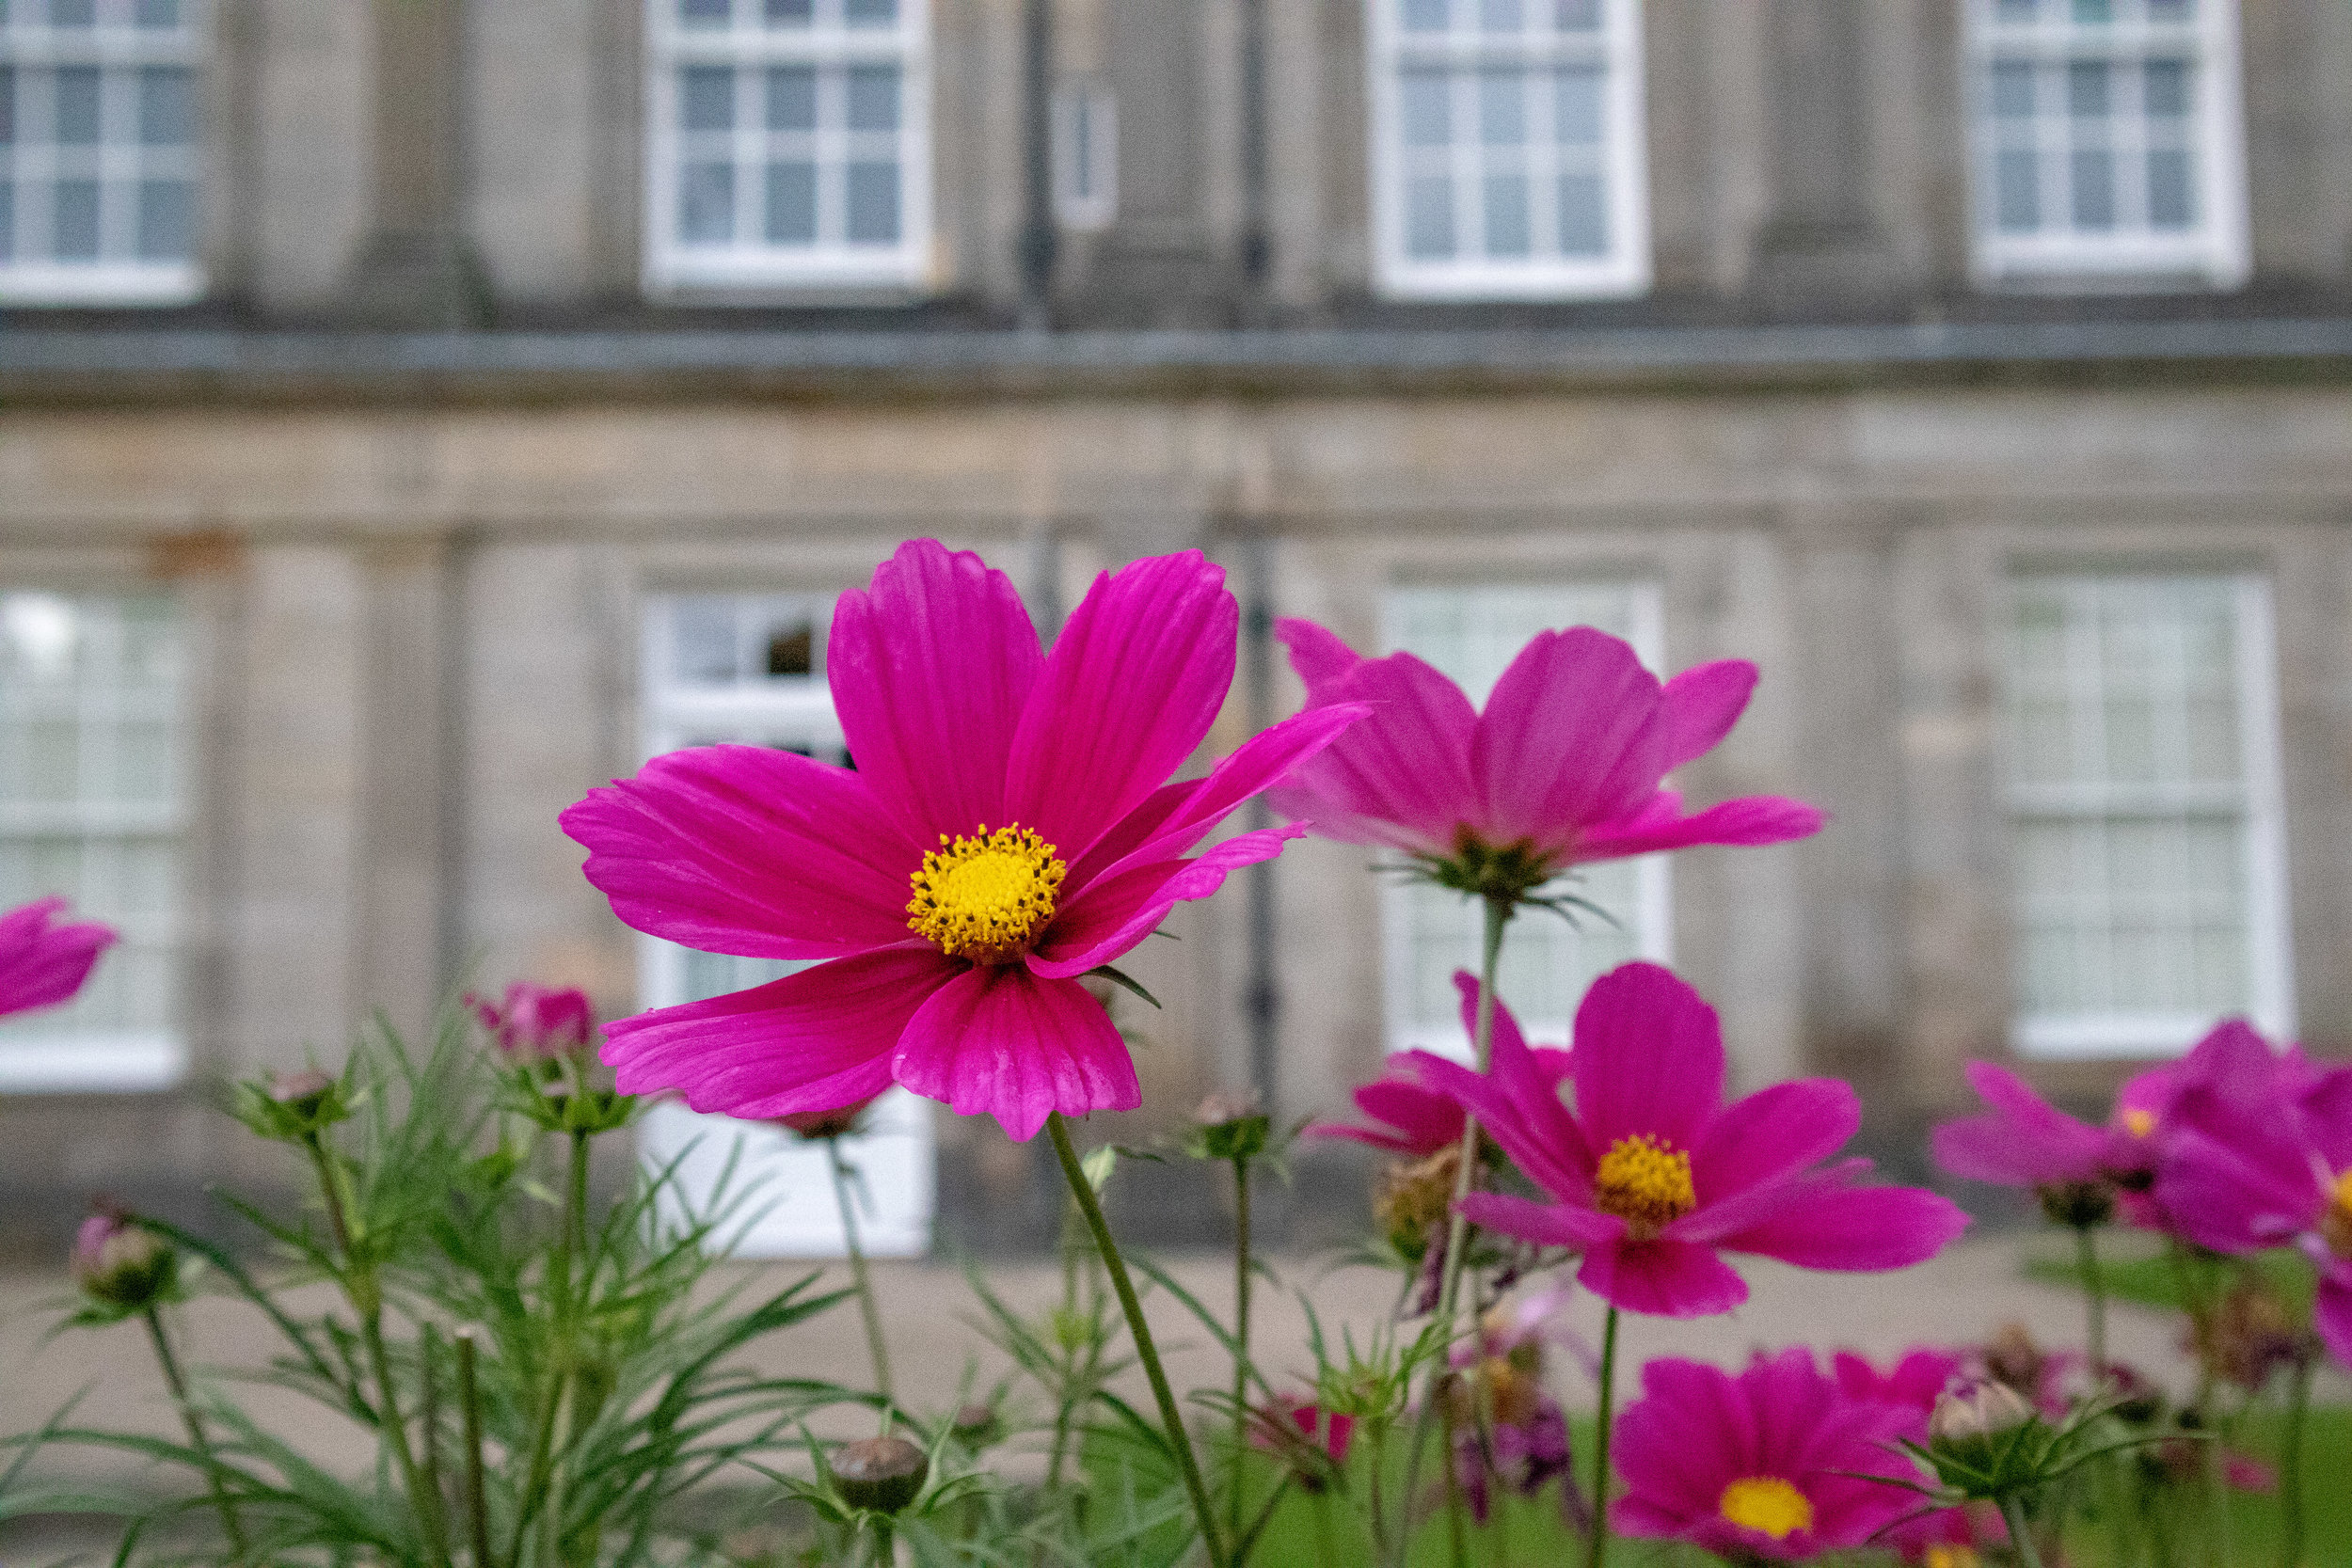 The Queen's garden flower! The Palace of Holyroodhouse in Edinburgh, Scotland. Read how to save money on your trip to Edinburgh! | MissFunctional Money